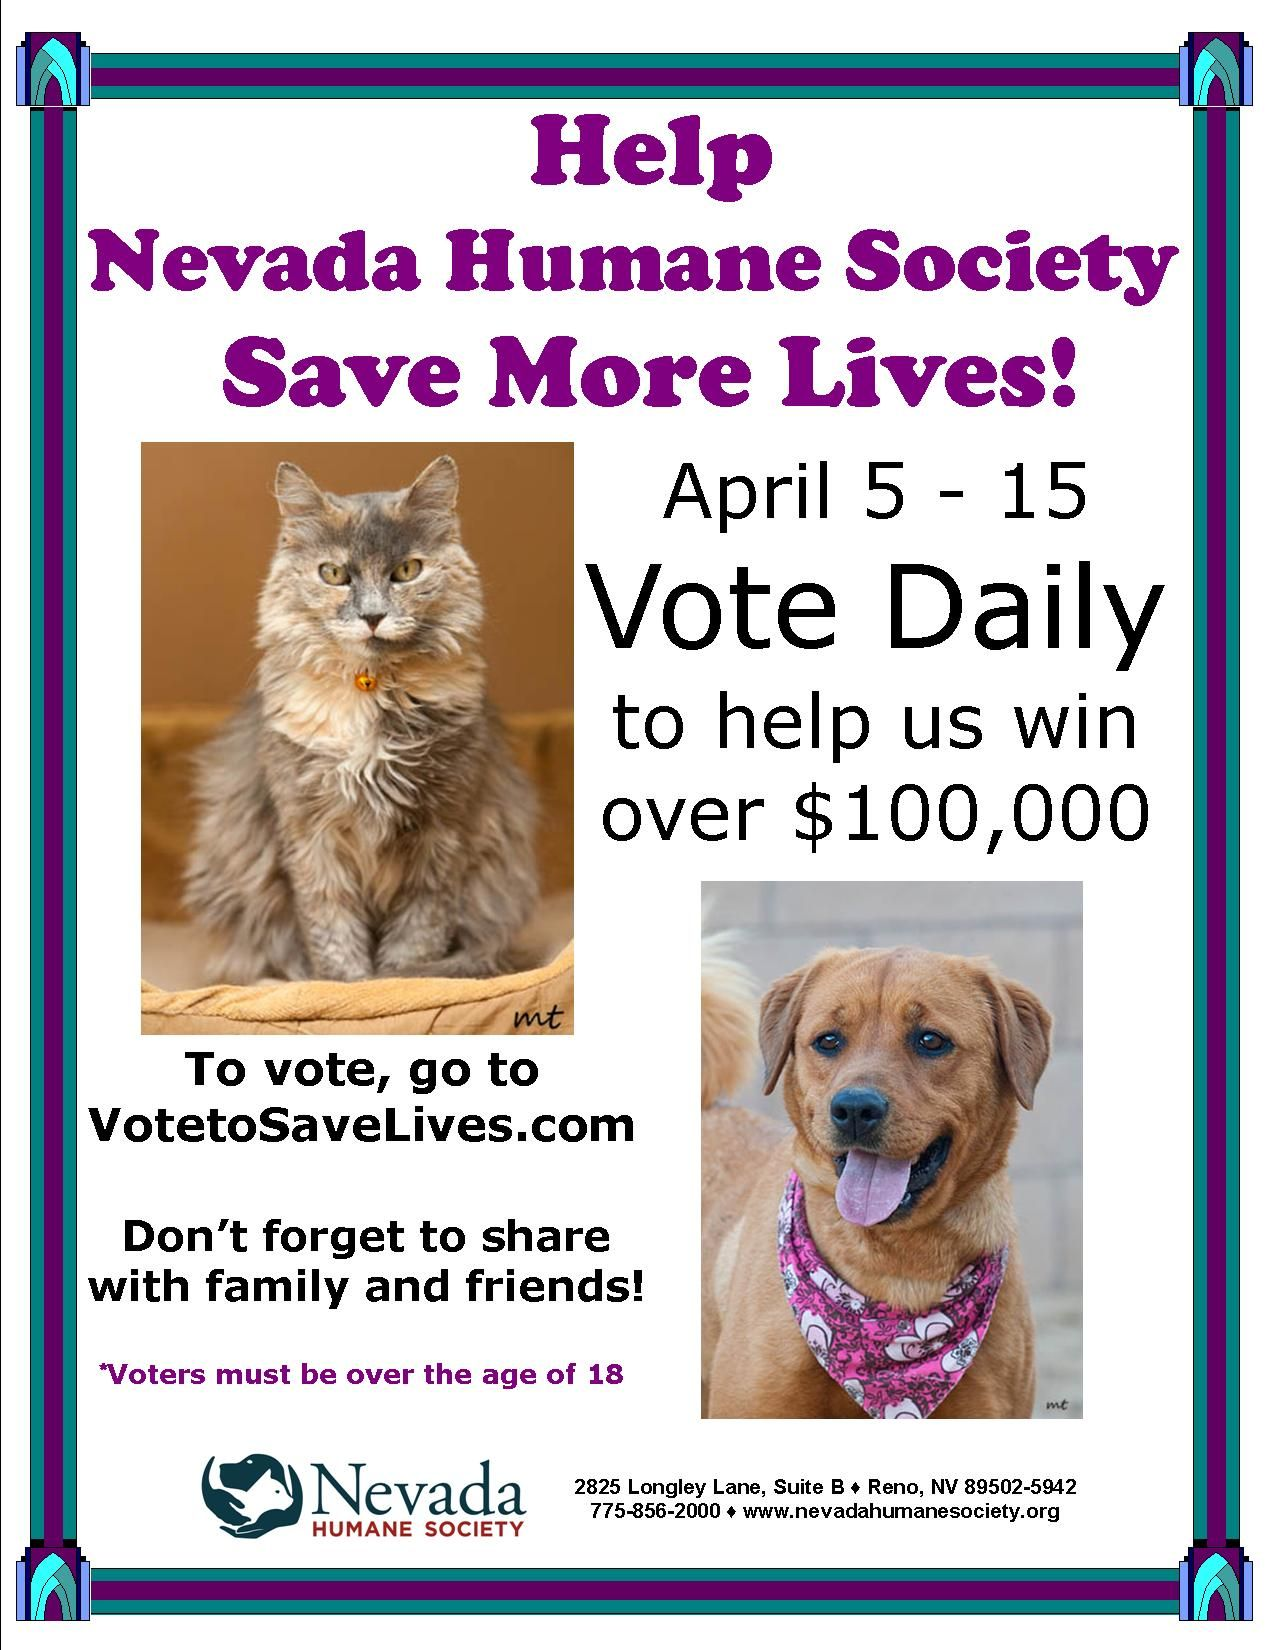 The Nevada Humane Society does amazing things in the animal rescue